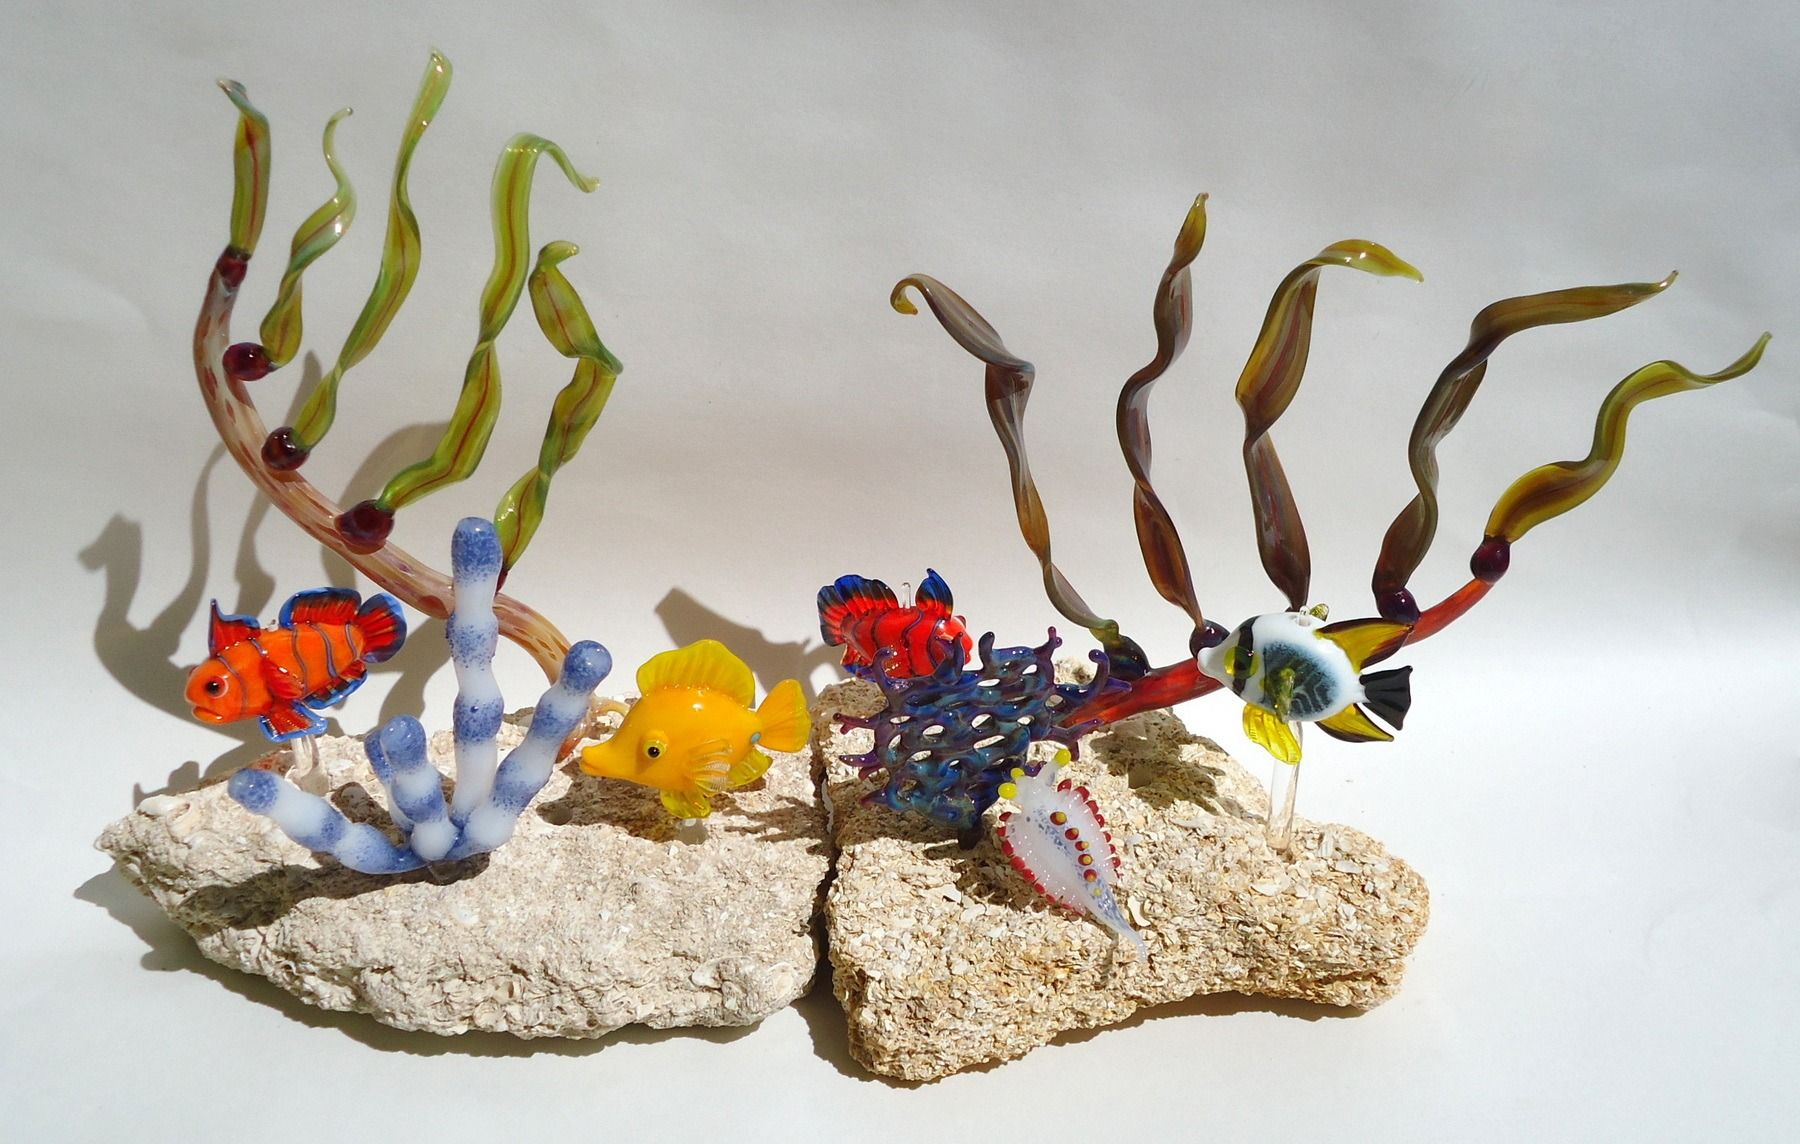 Aquatic Immersion, Just Dive In! Boro and Soft Glass Marine vignettes!